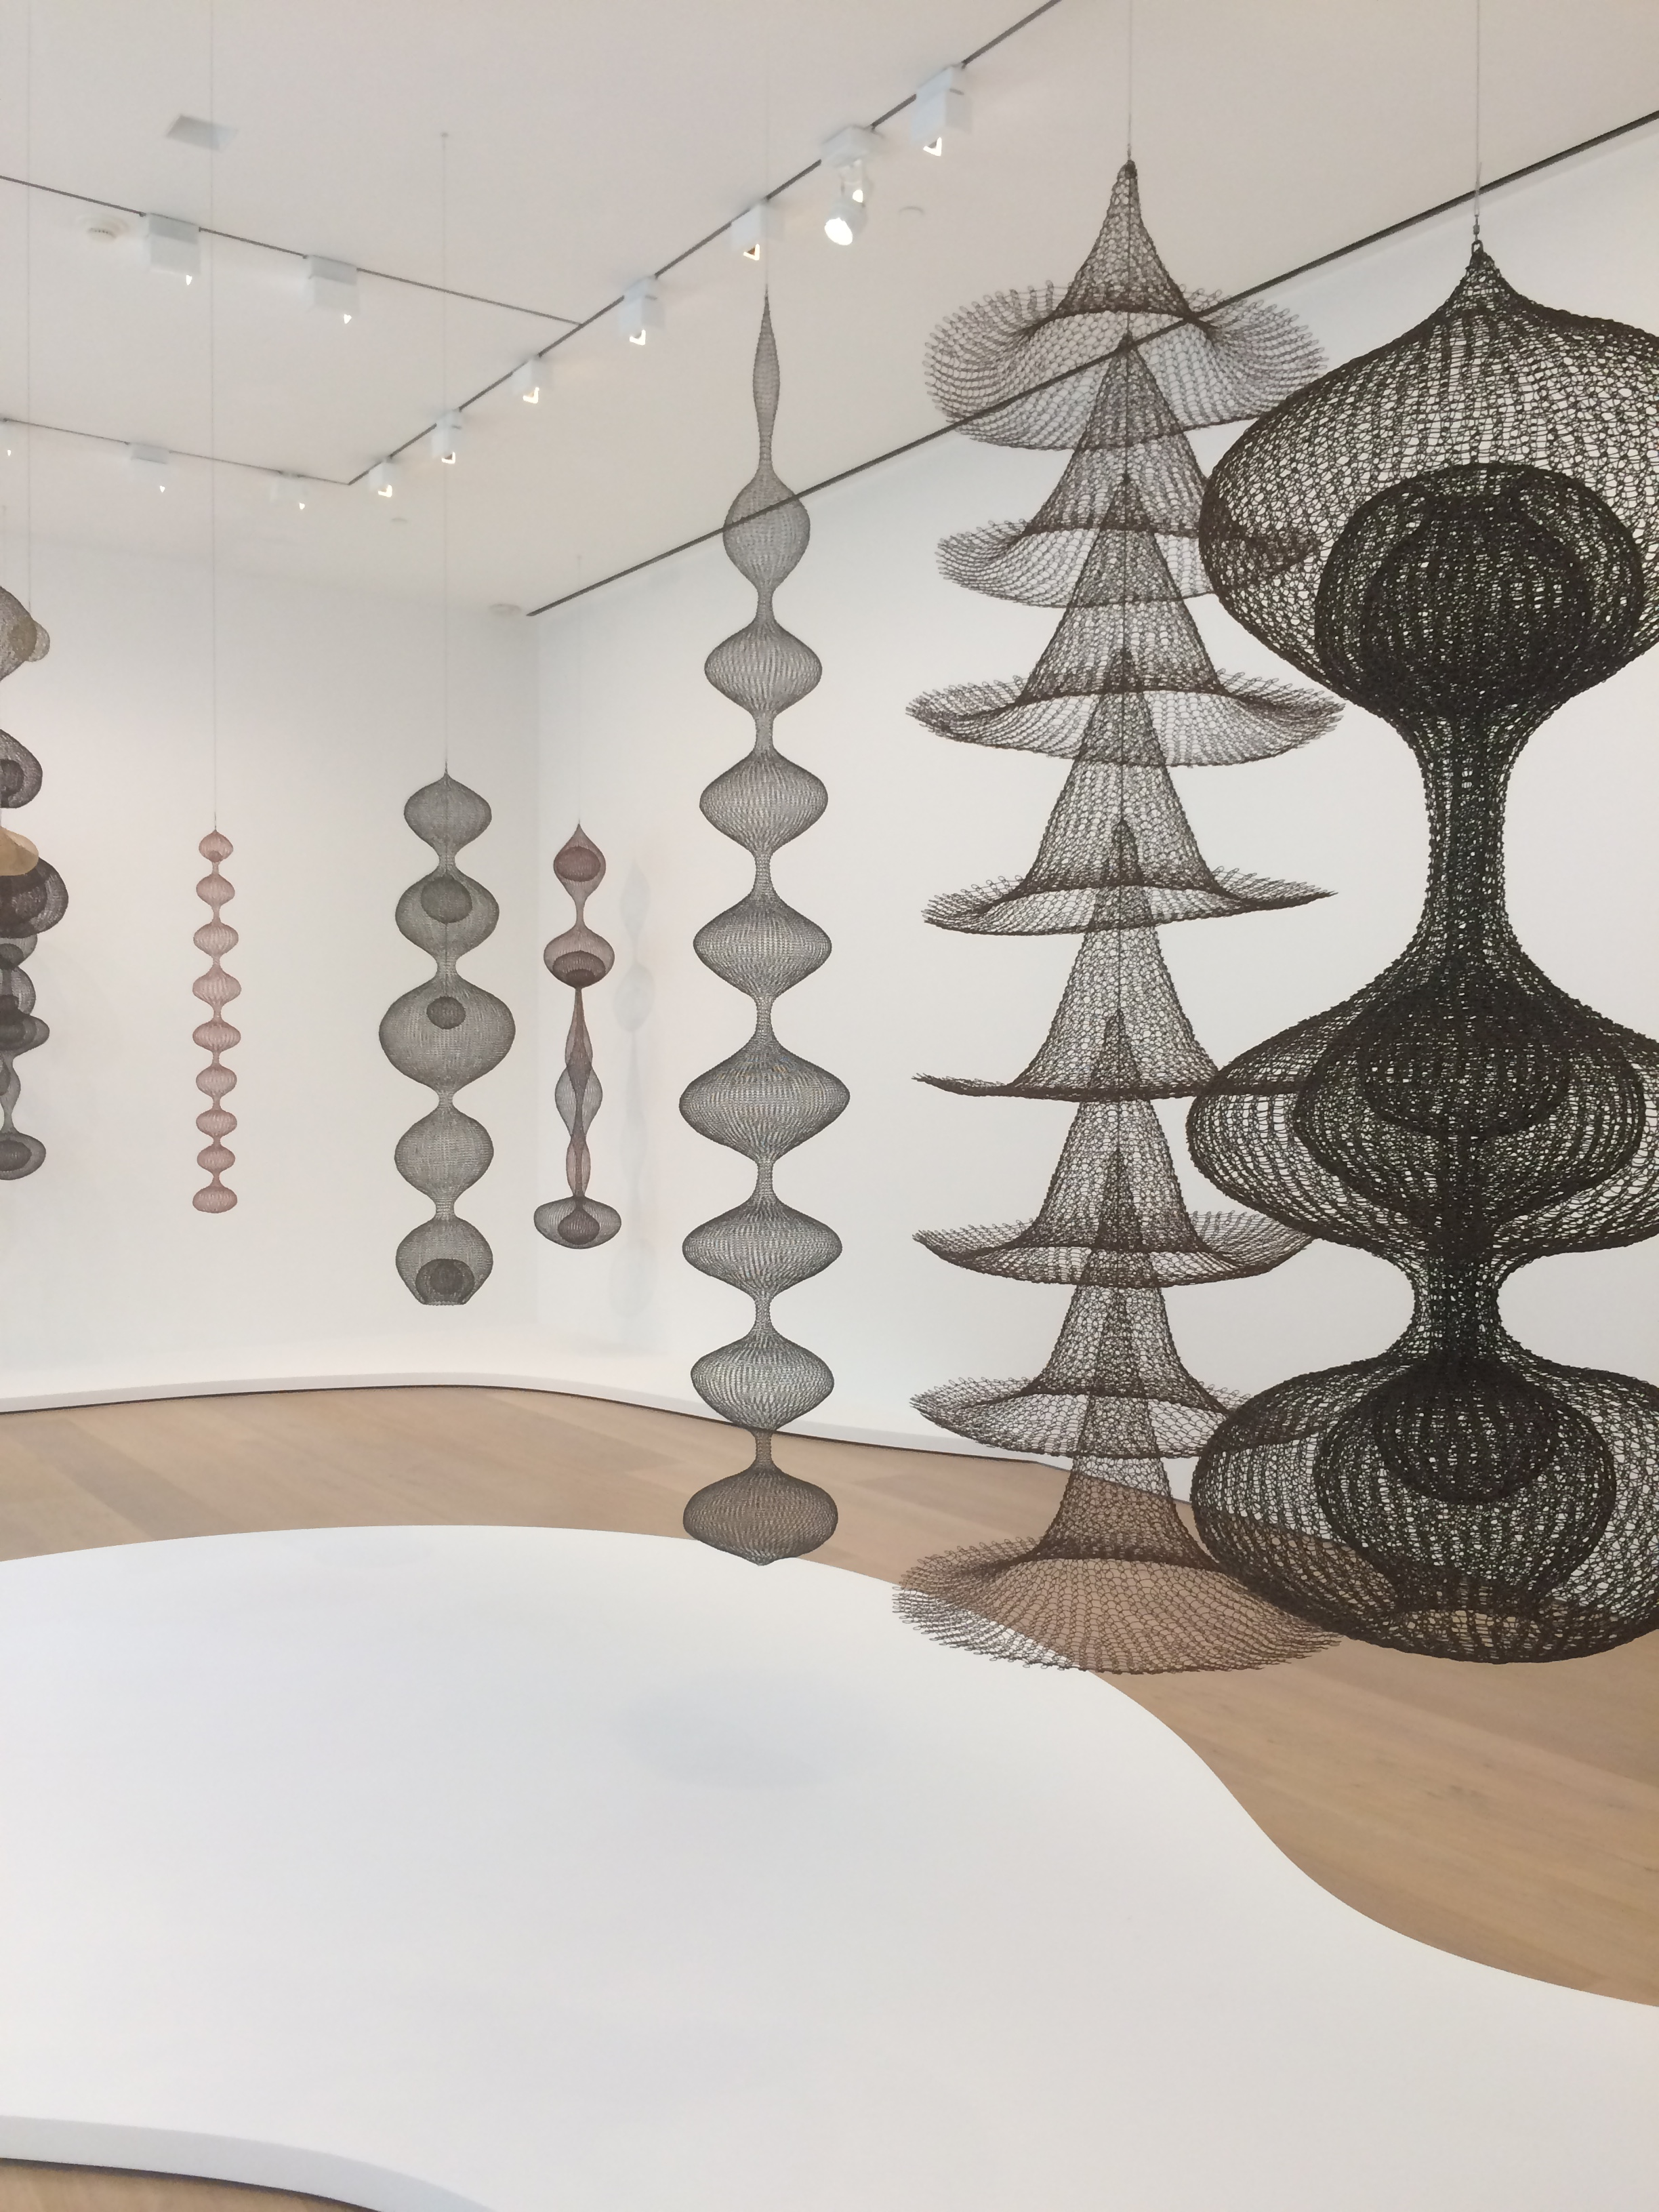 Ruth Asawa at David Zwirner Gallery | fibonaccisusan